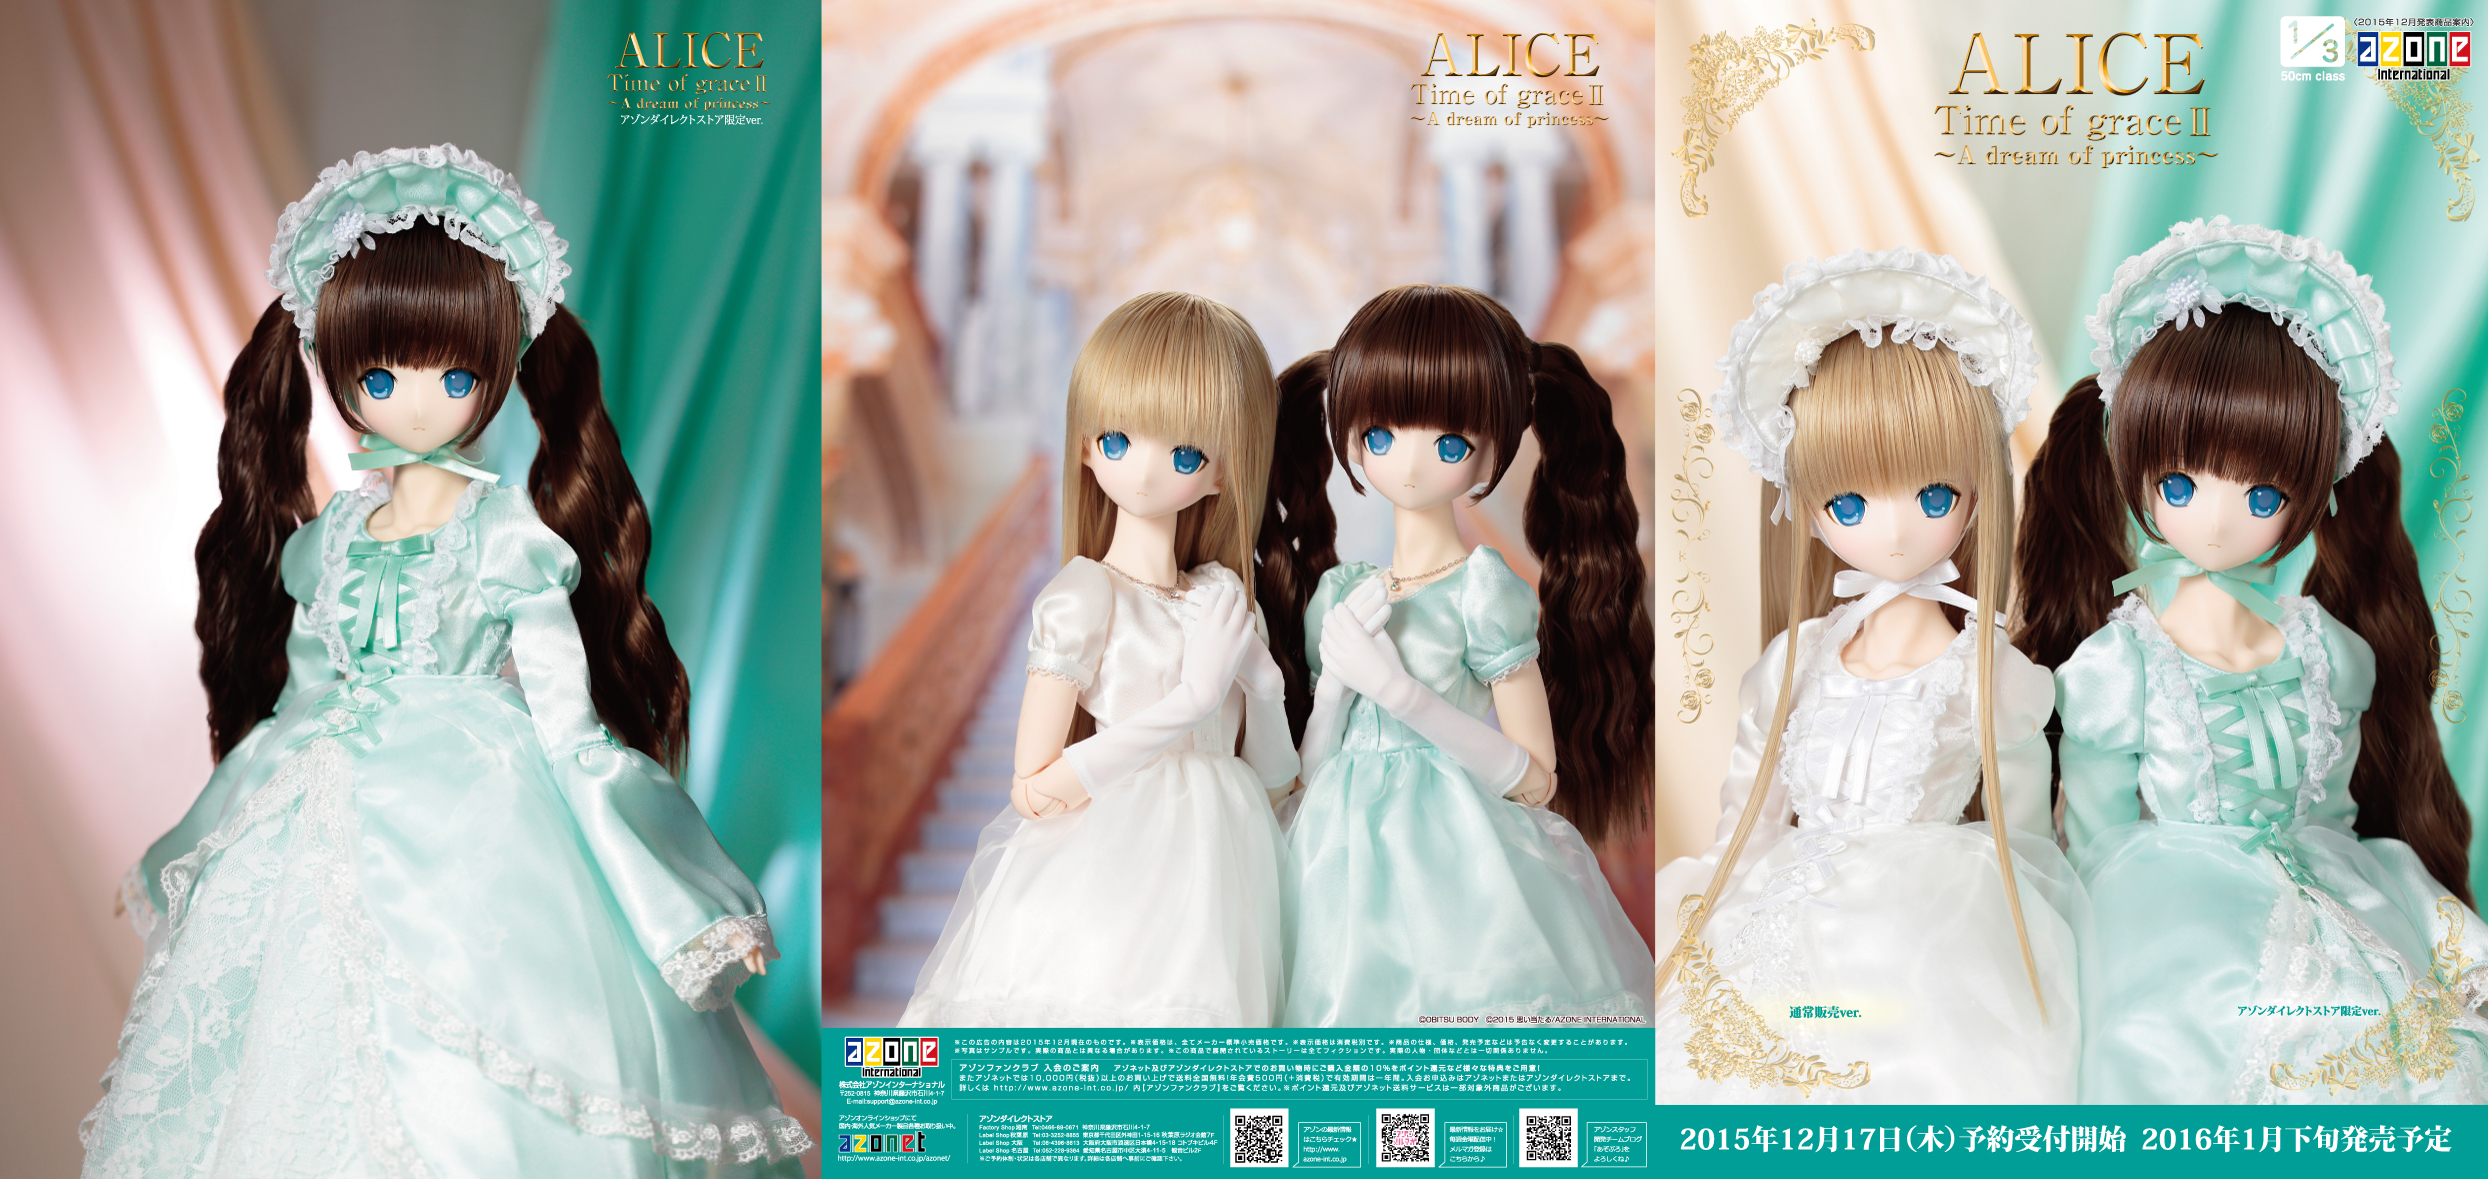 Alice/Time of grace2